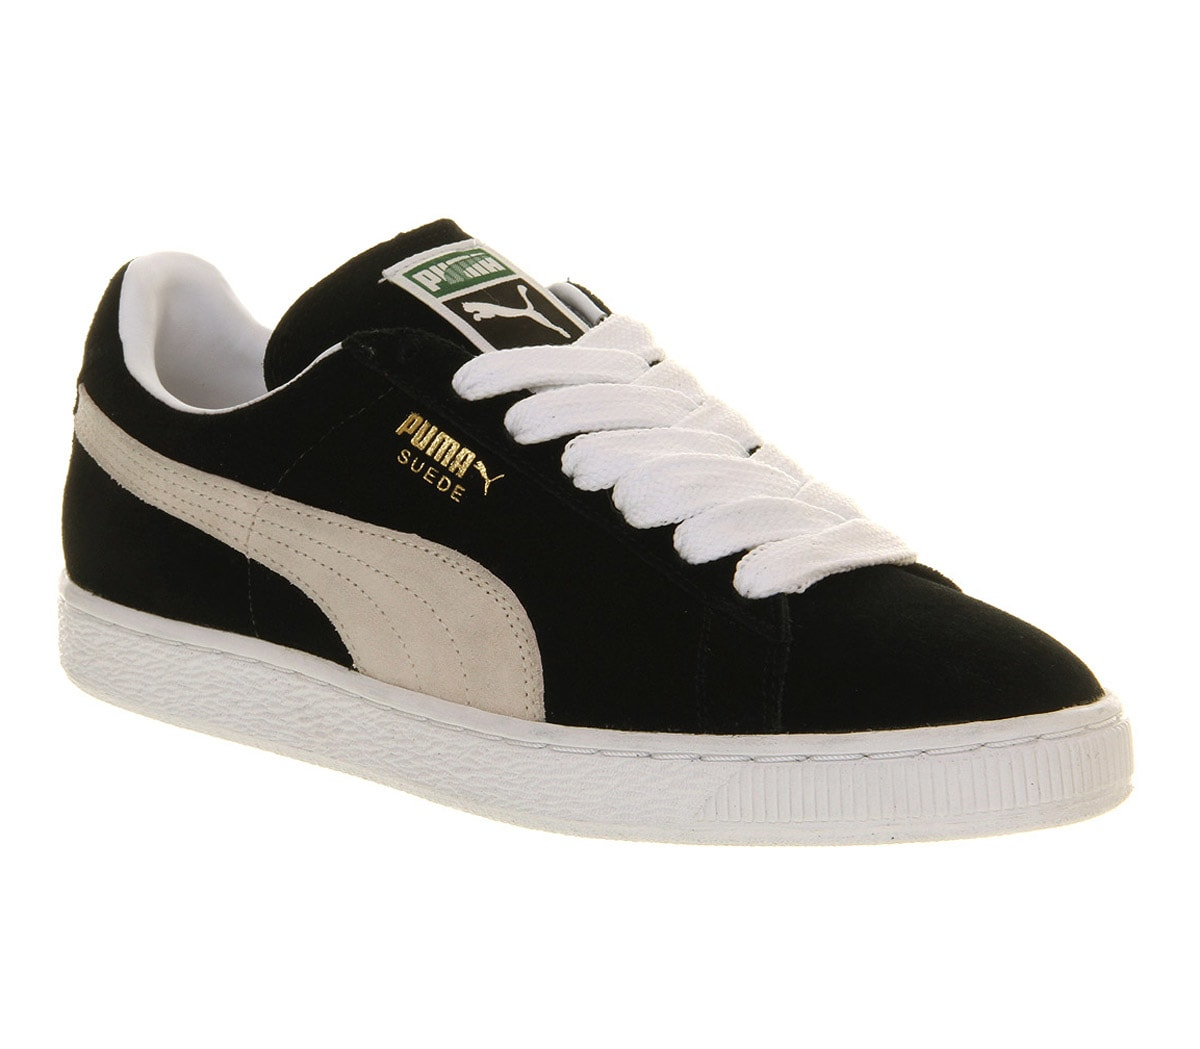 mens puma suede classic black white trainers shoes ebay. Black Bedroom Furniture Sets. Home Design Ideas